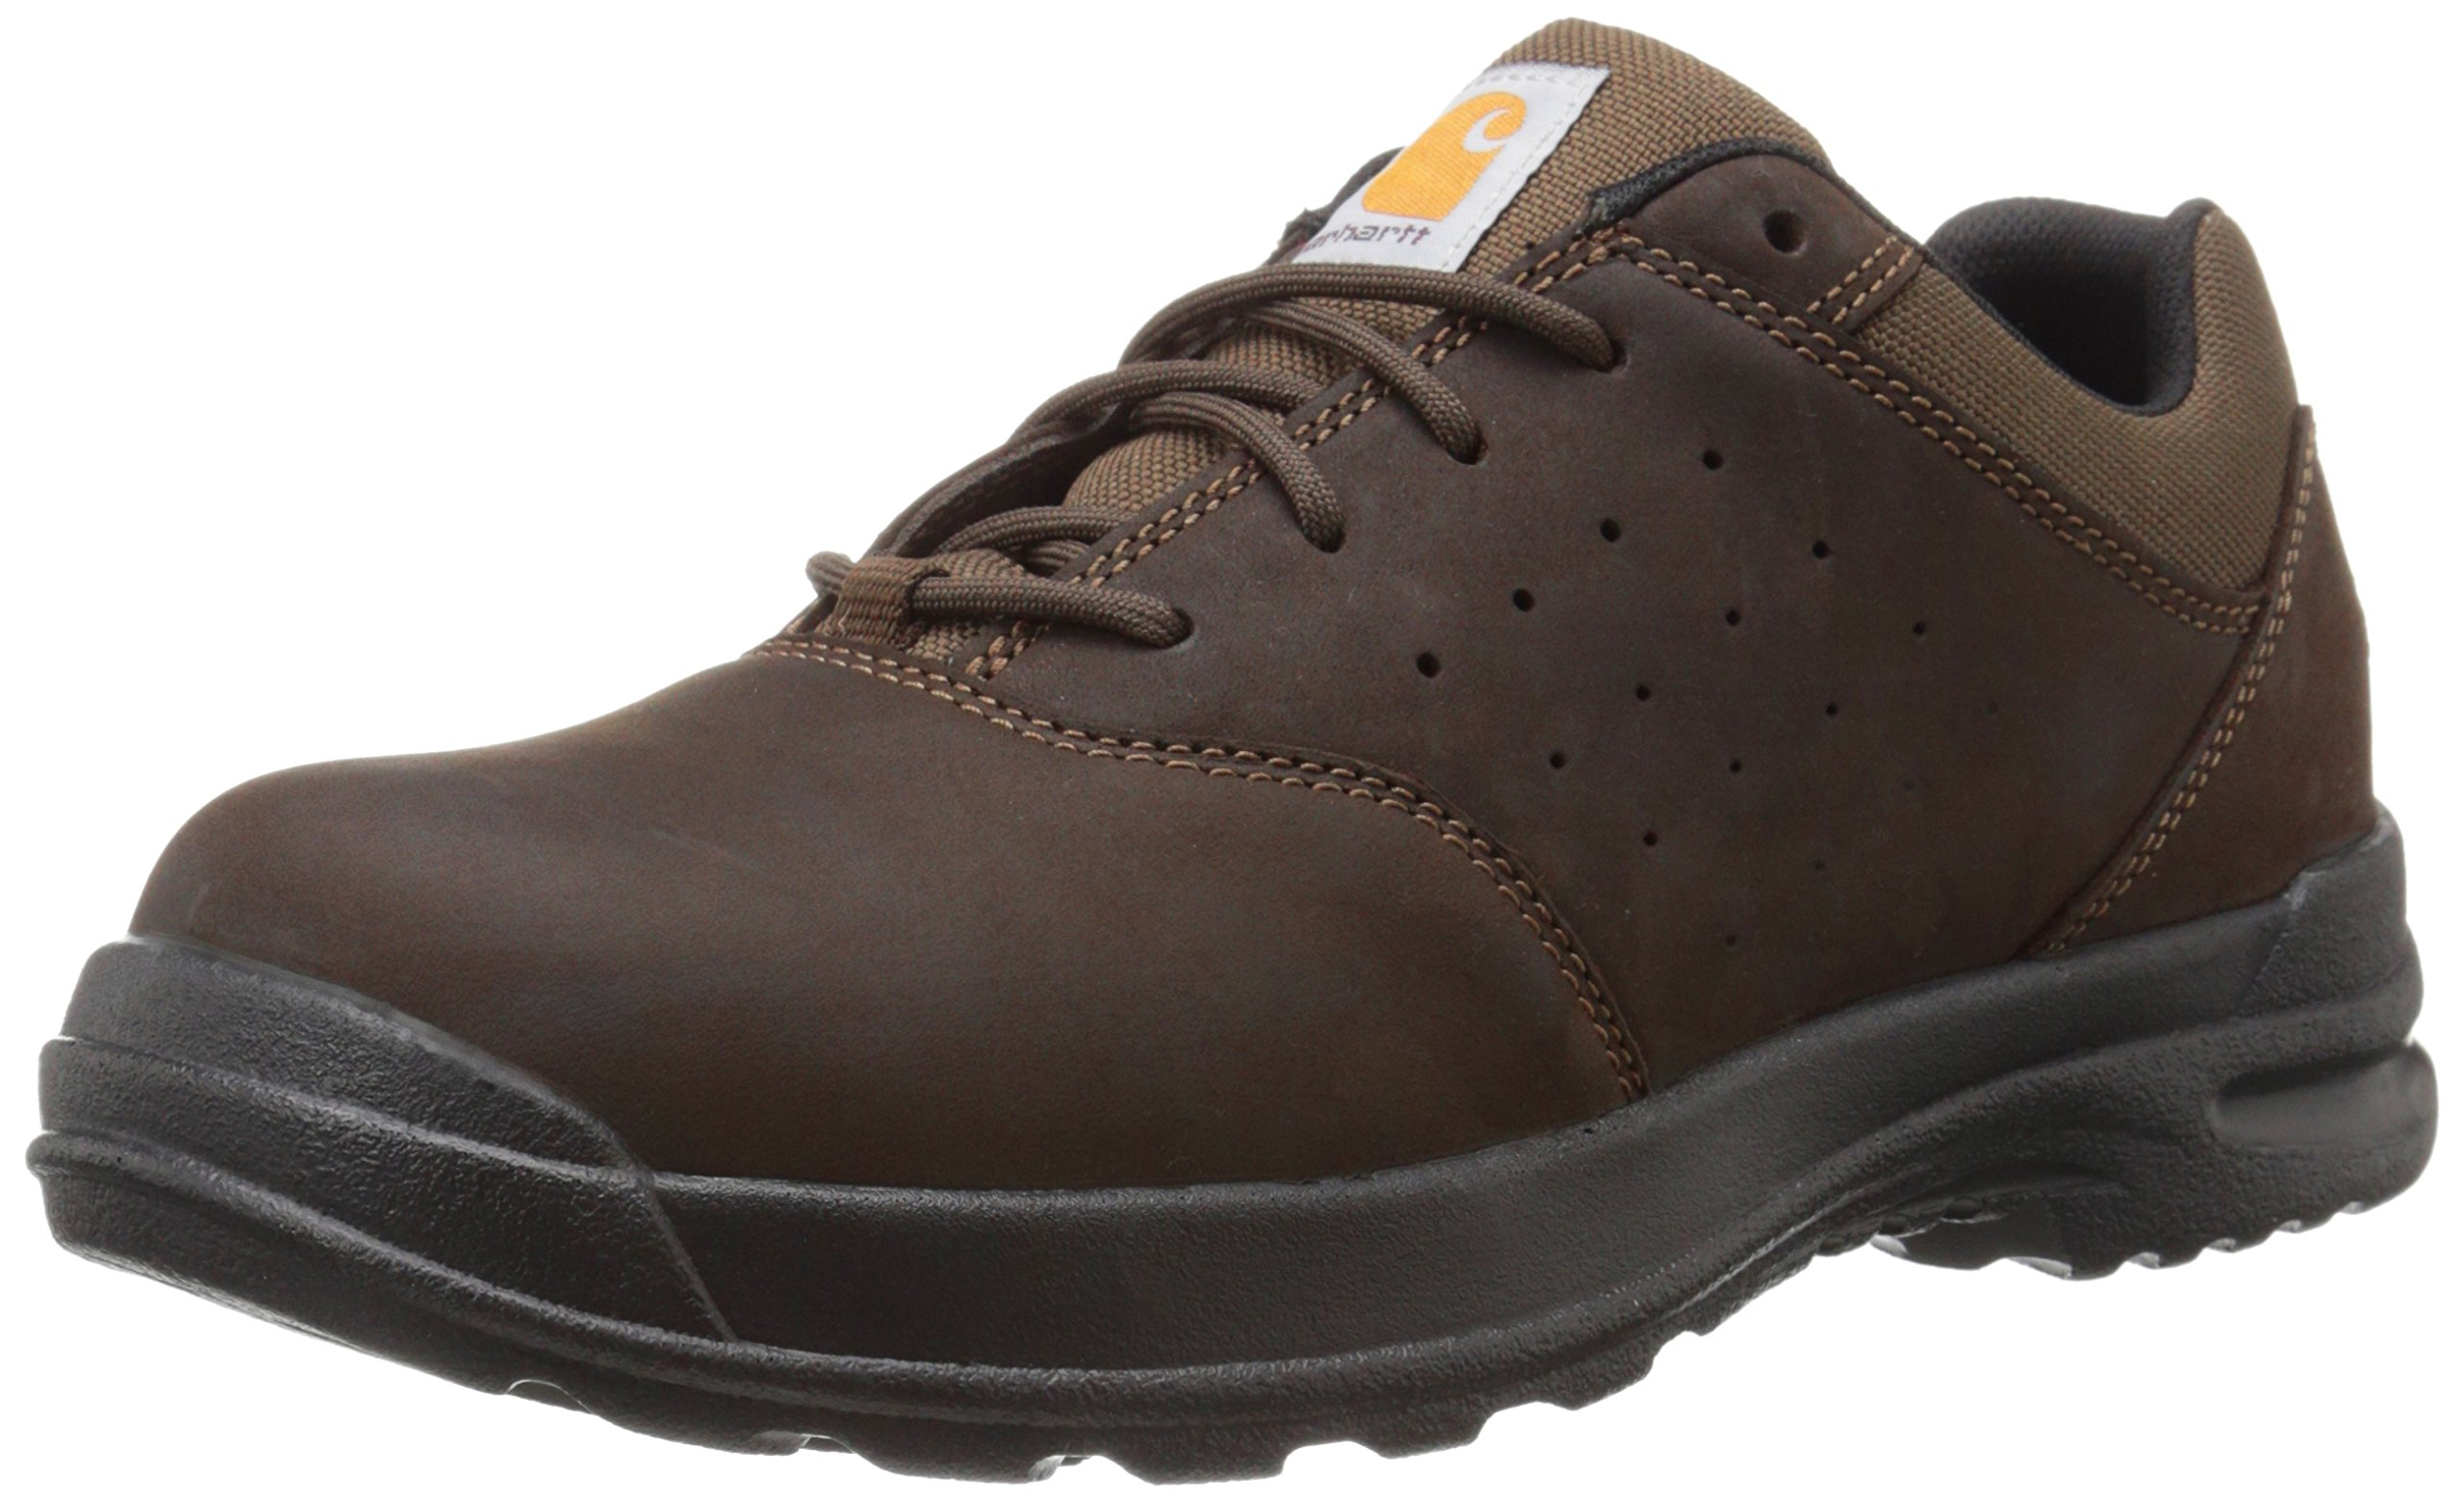 Carhartt Men's CMO3040 Walking Oxford,Dark Brown, 13 M US